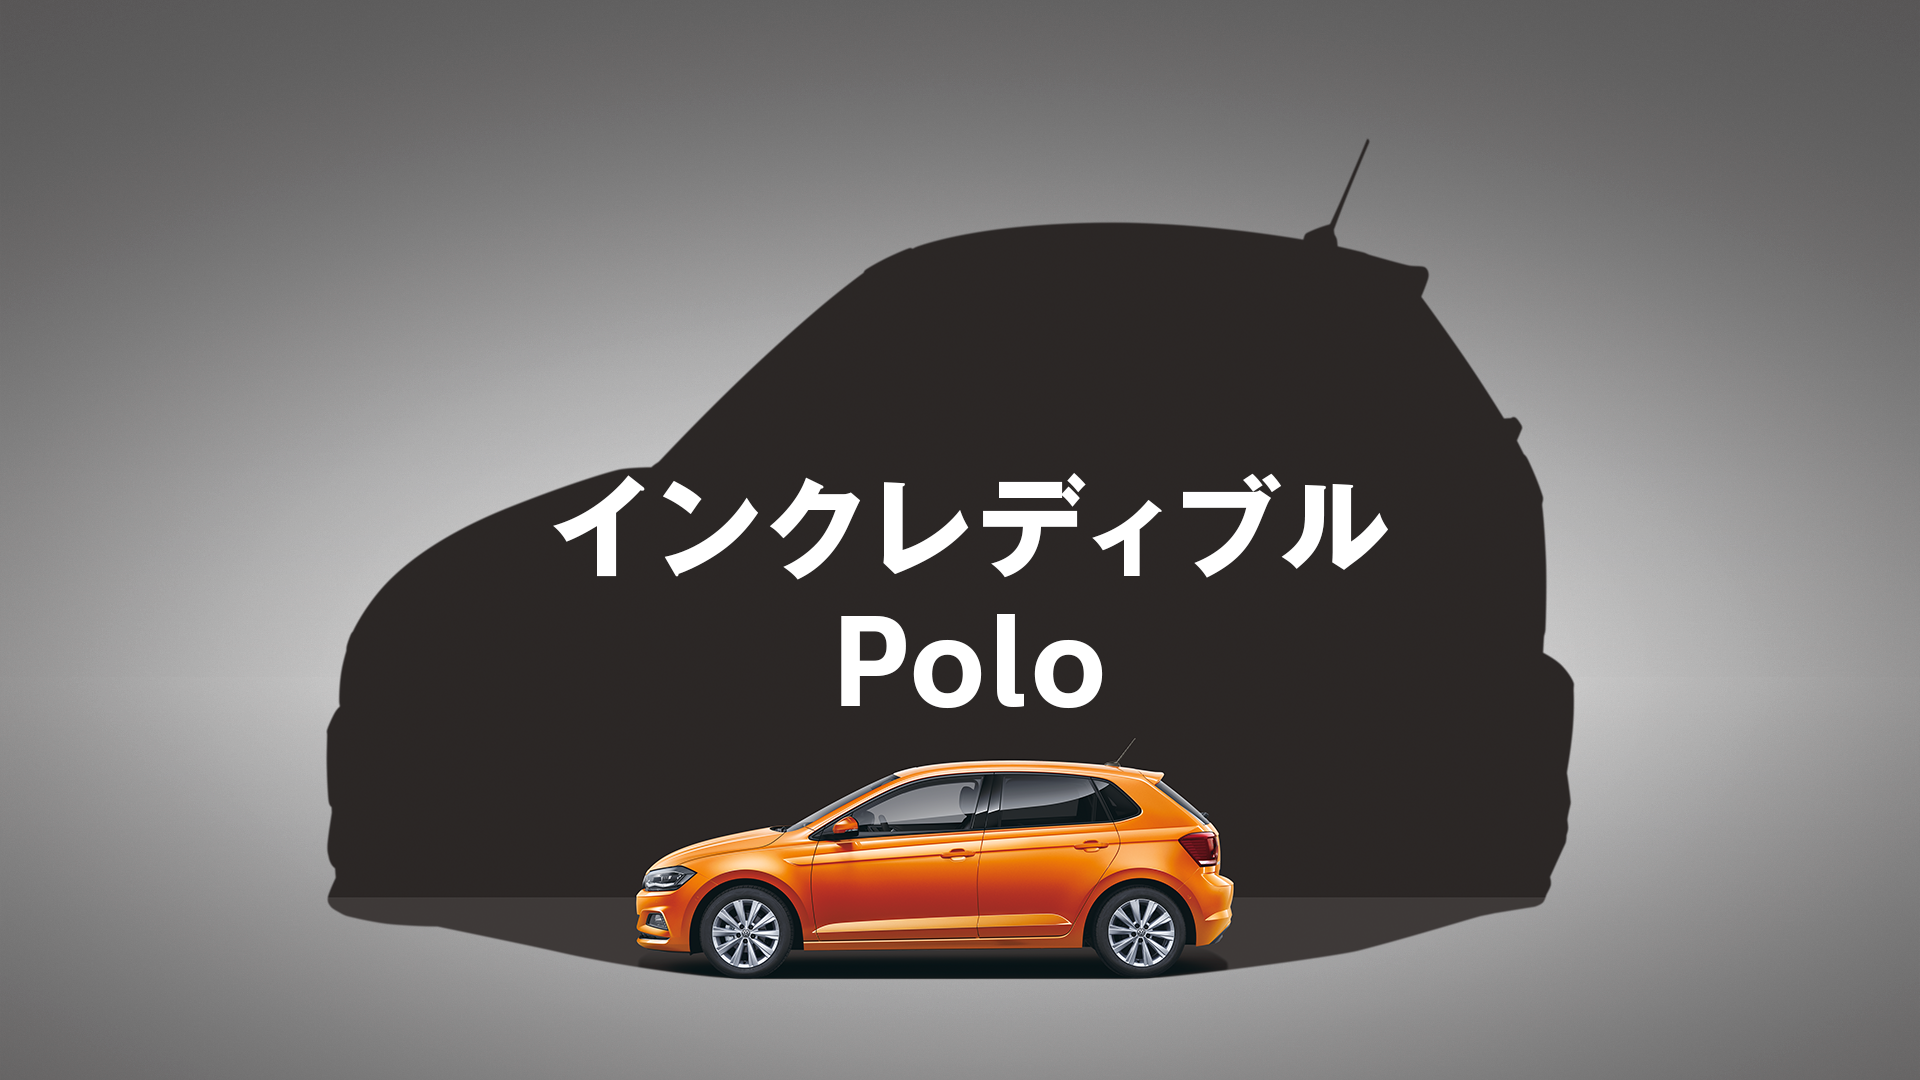 Polo Comfortline Limited デビュー